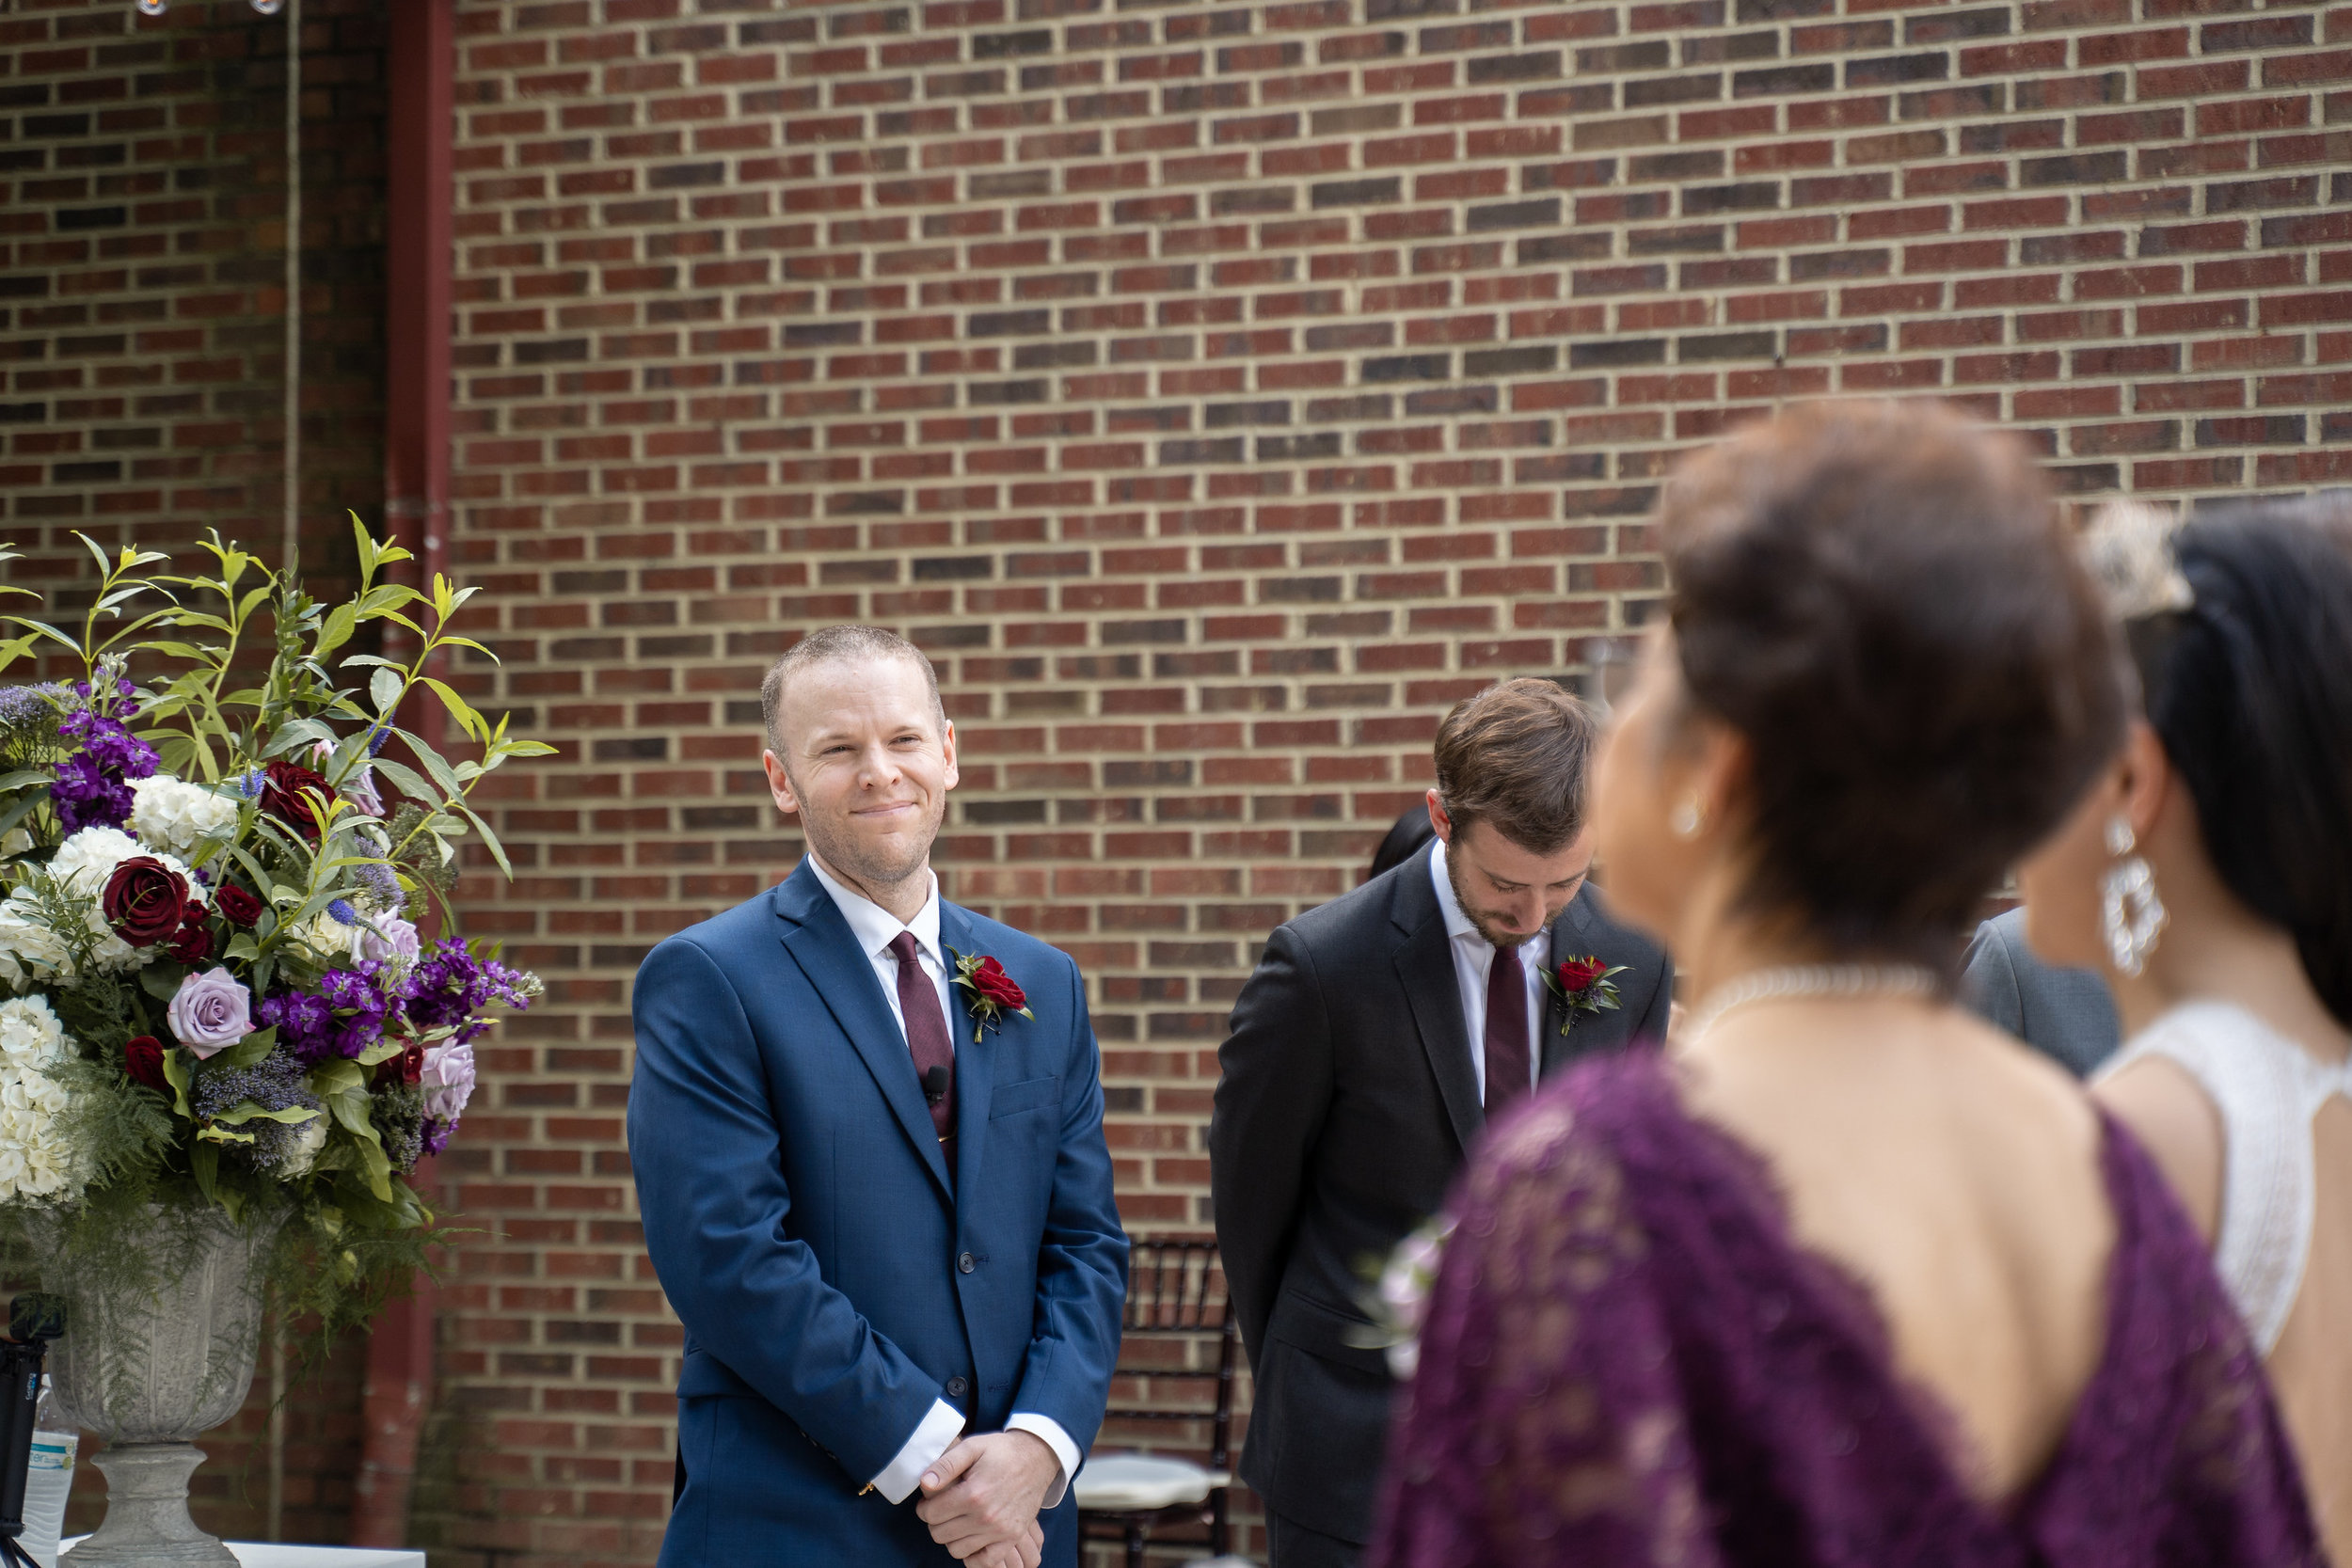 VisualRituals_raleigh-wedding-jao-laws-32.jpg